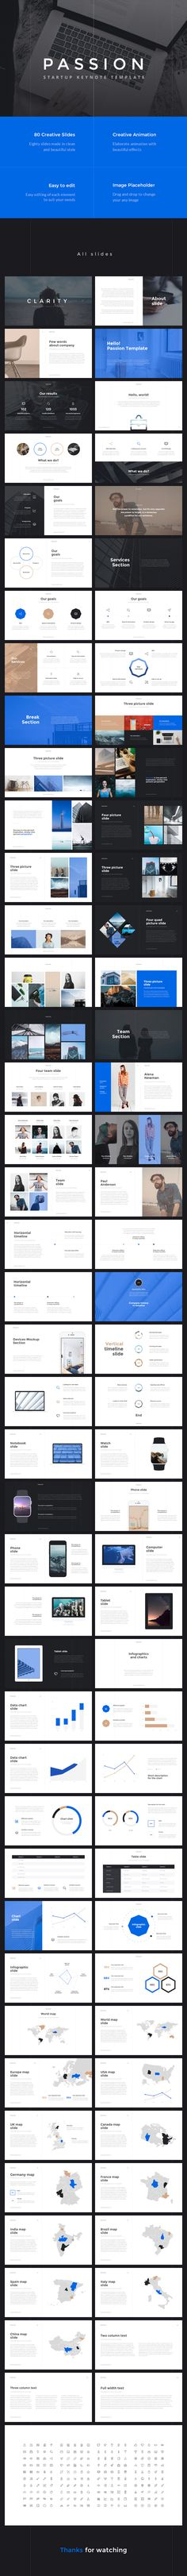 Passion Startup Keynote Template — Keynote KEY #design #powerpoint • Download ➝ https://graphicriver.net/item/passion-startup-keynote-template/19758911?ref=pxcr